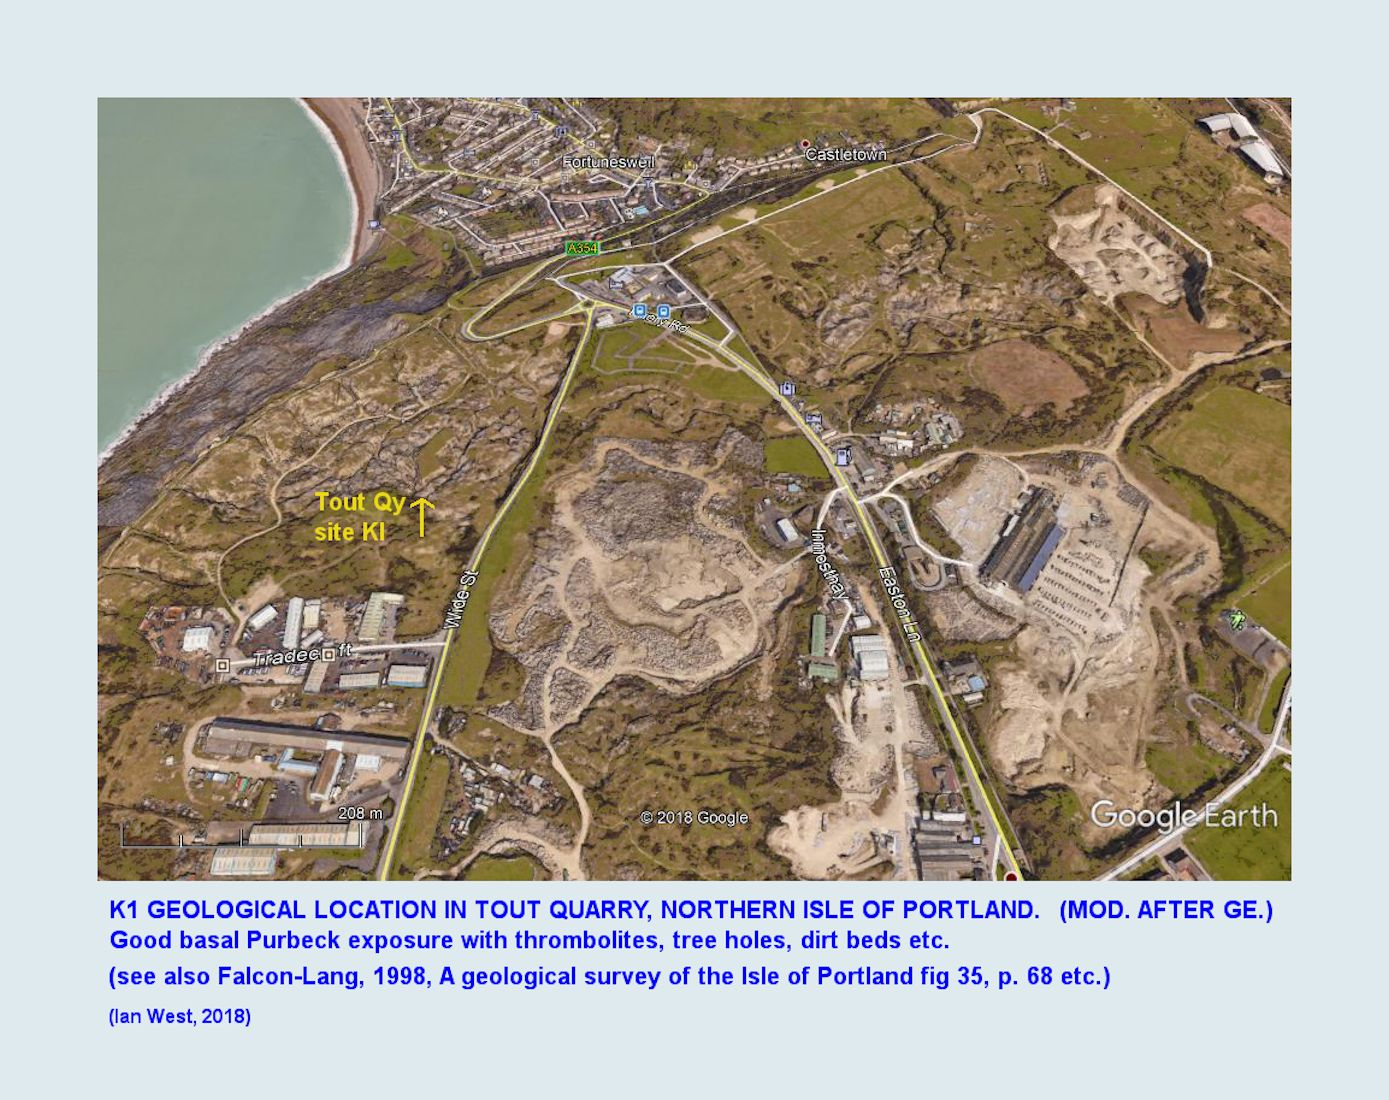 The location of Tout Quarry in the northern part of the Isle of Portland - this quarry is easily accessible and shows very good sections of the Portland-Purbeck juction at site K1